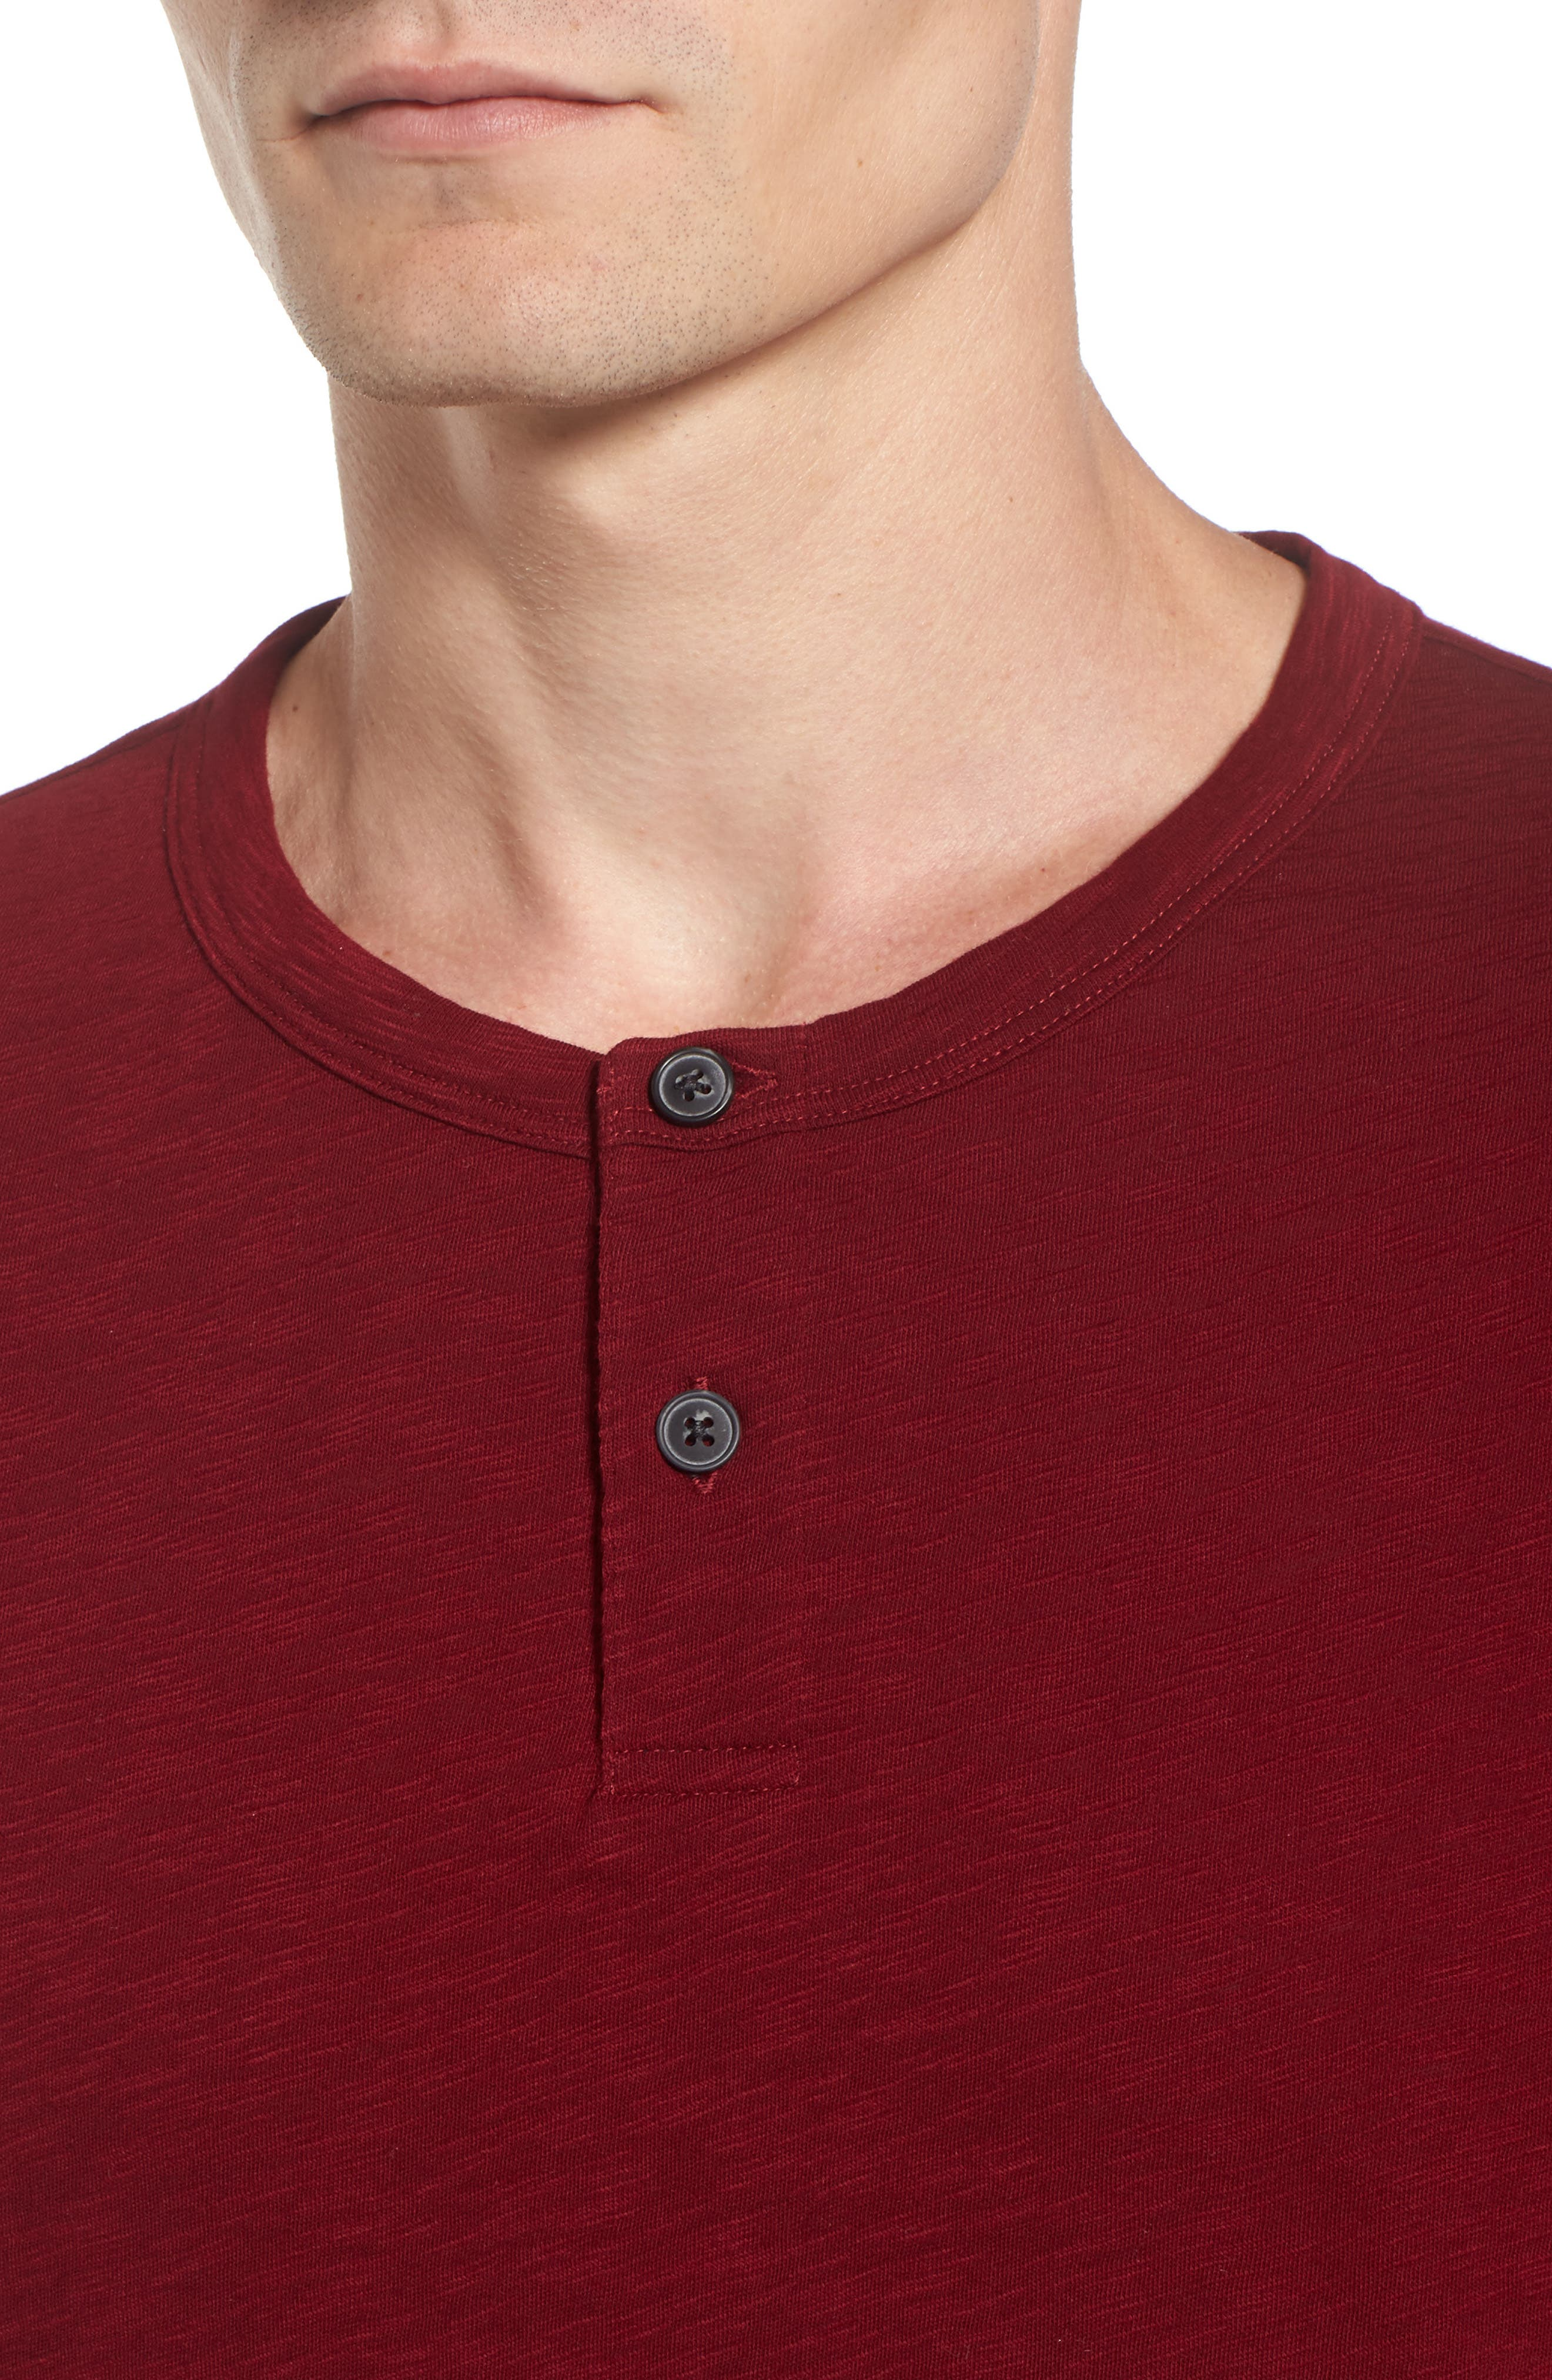 Gaskell Henley T-Shirt,                             Alternate thumbnail 4, color,                             Radish